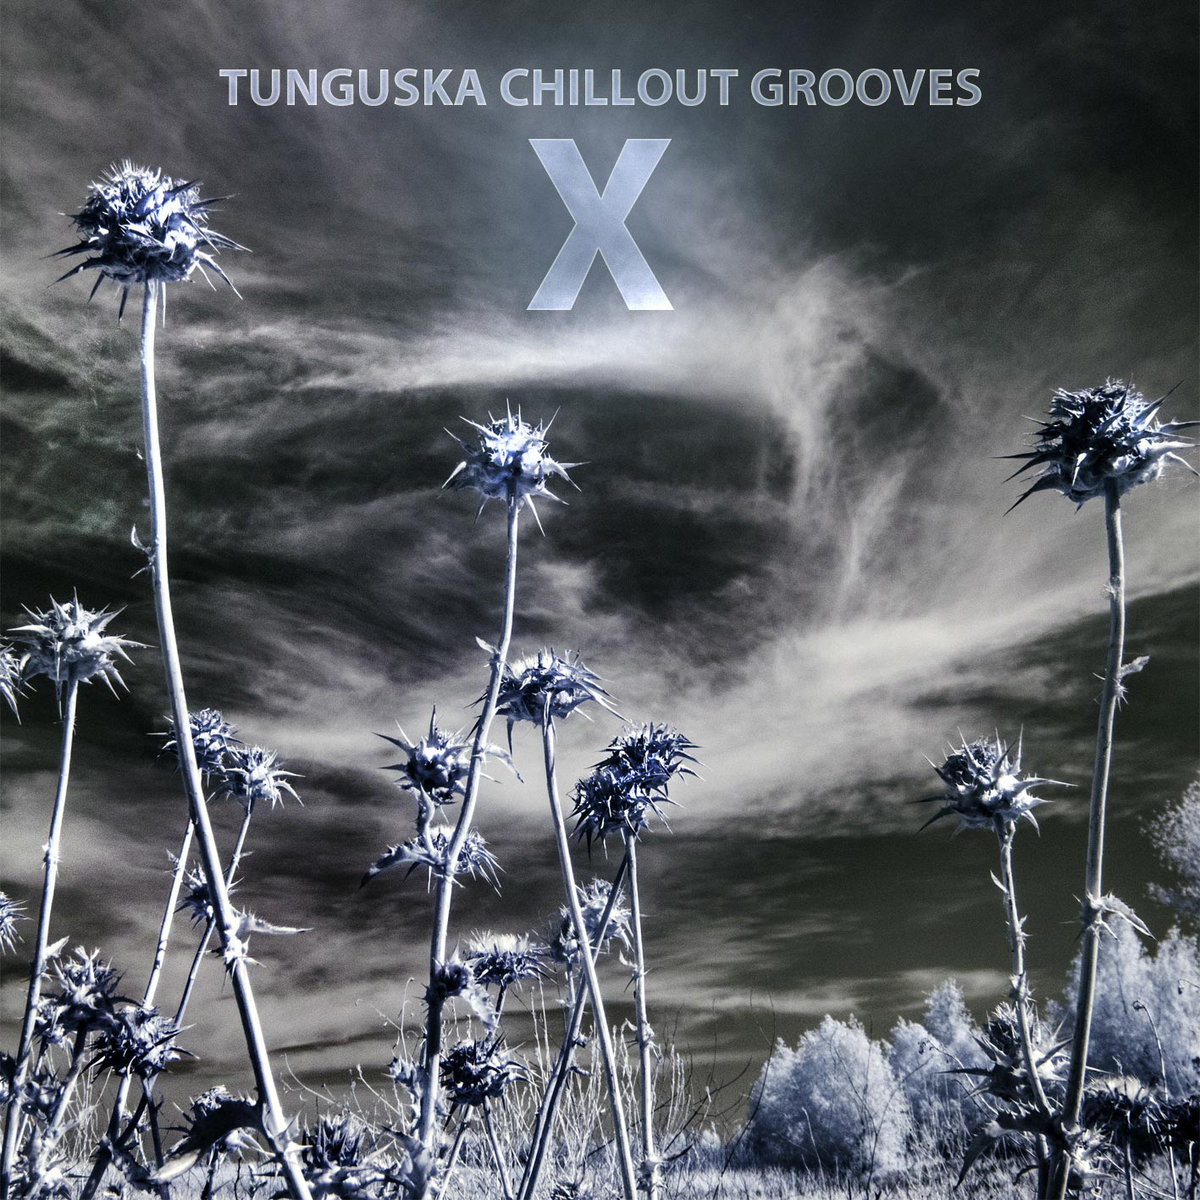 CJ Catalizer - The Third Orbit @ 'Tunguska Chillout Grooves - Volume 10' album (electronic, ambient)